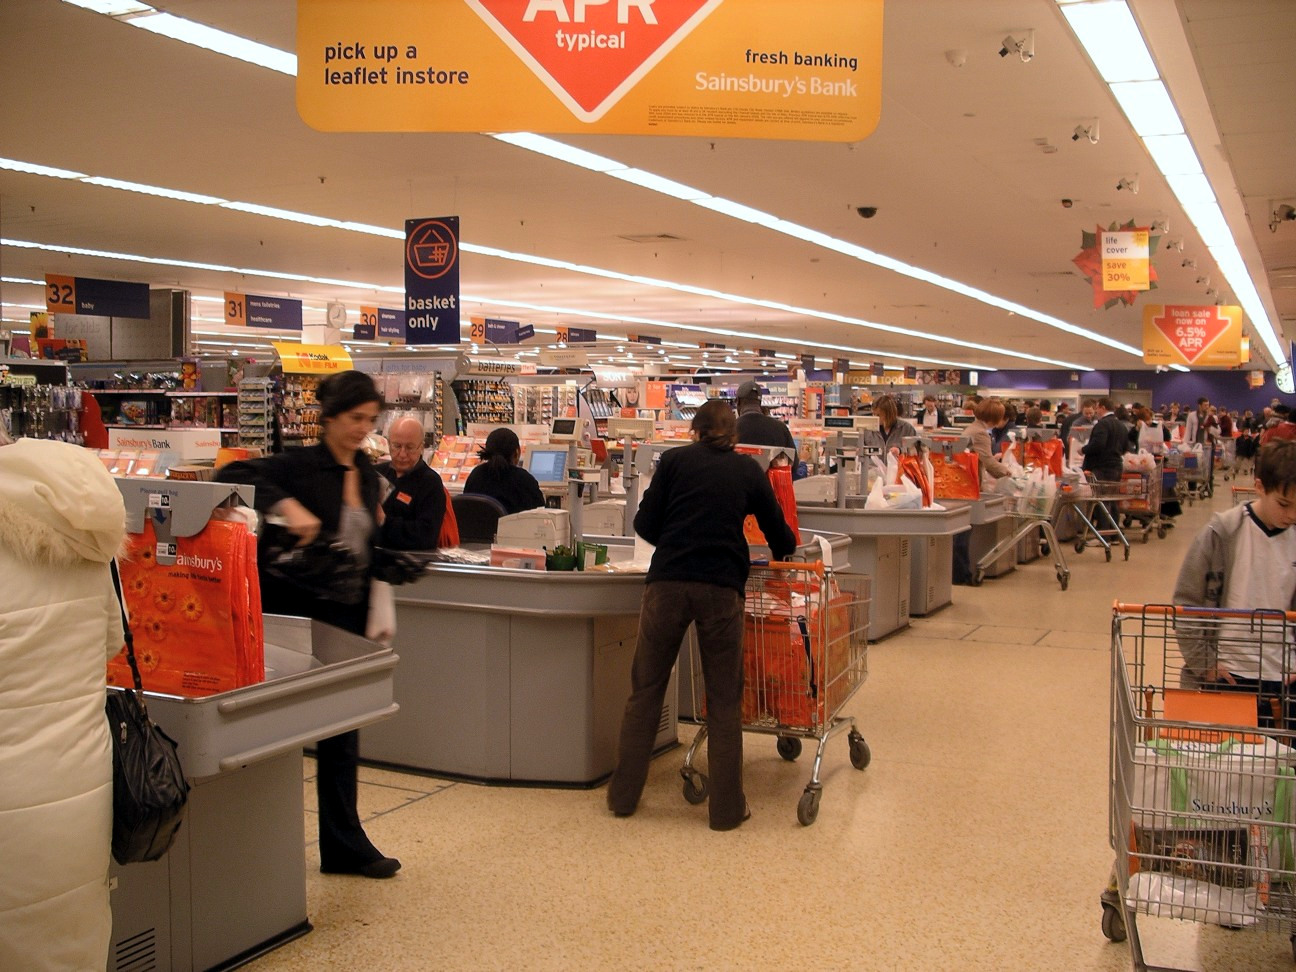 Sainsbury's Checkout Line